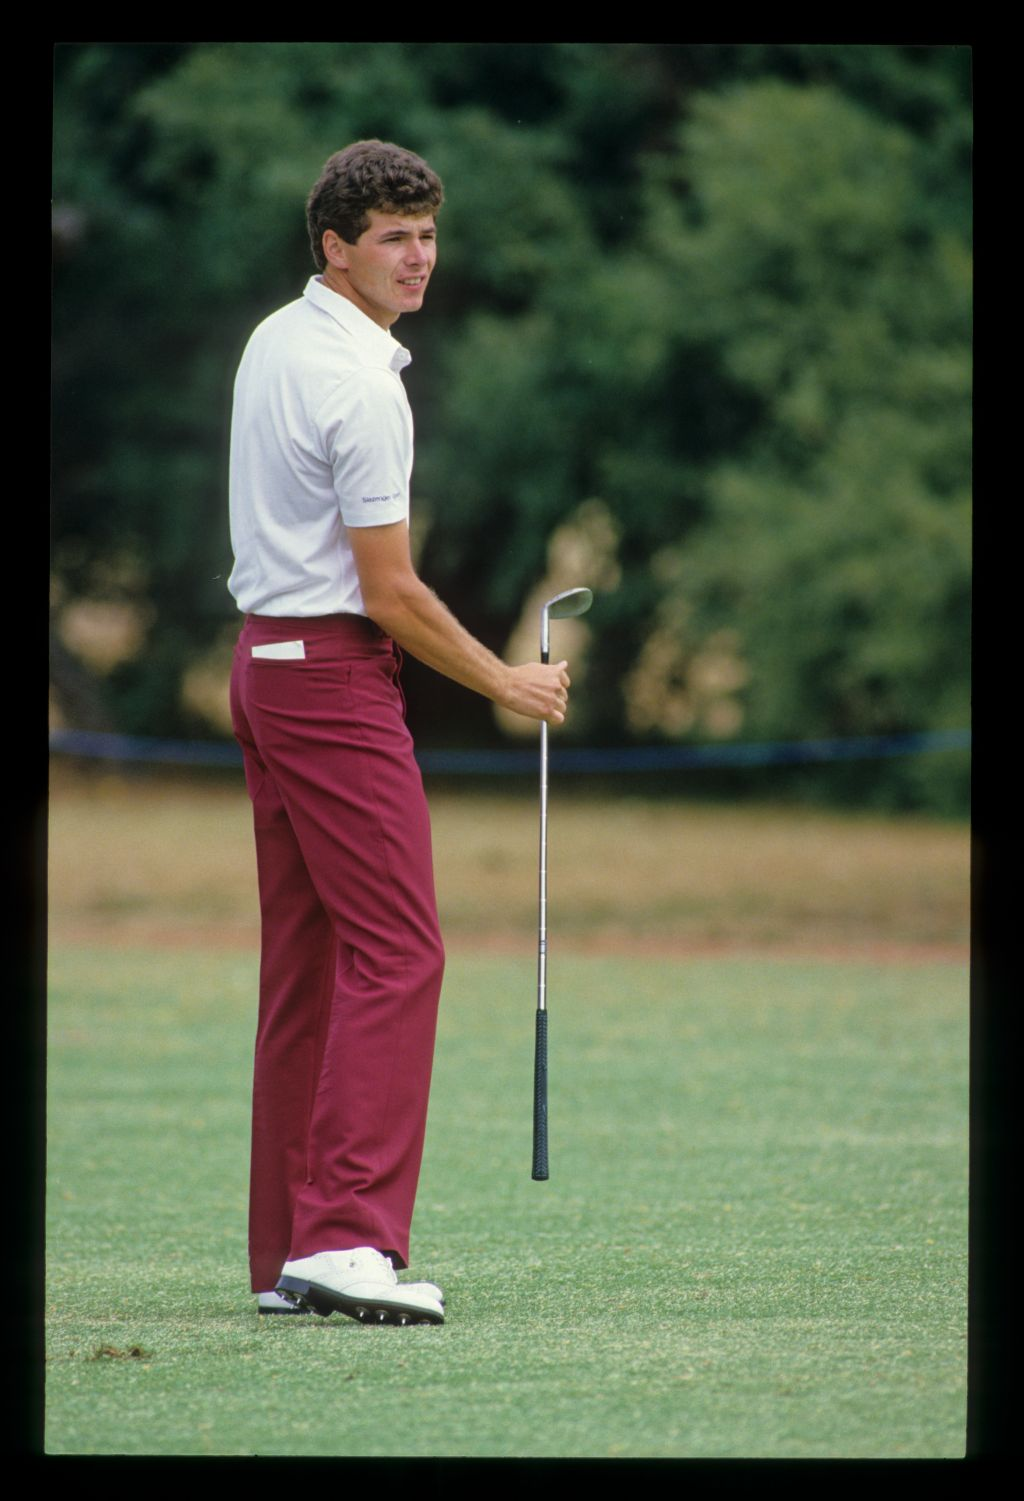 Philip Parkin reacting to a shot during the 1986 Australian Masters